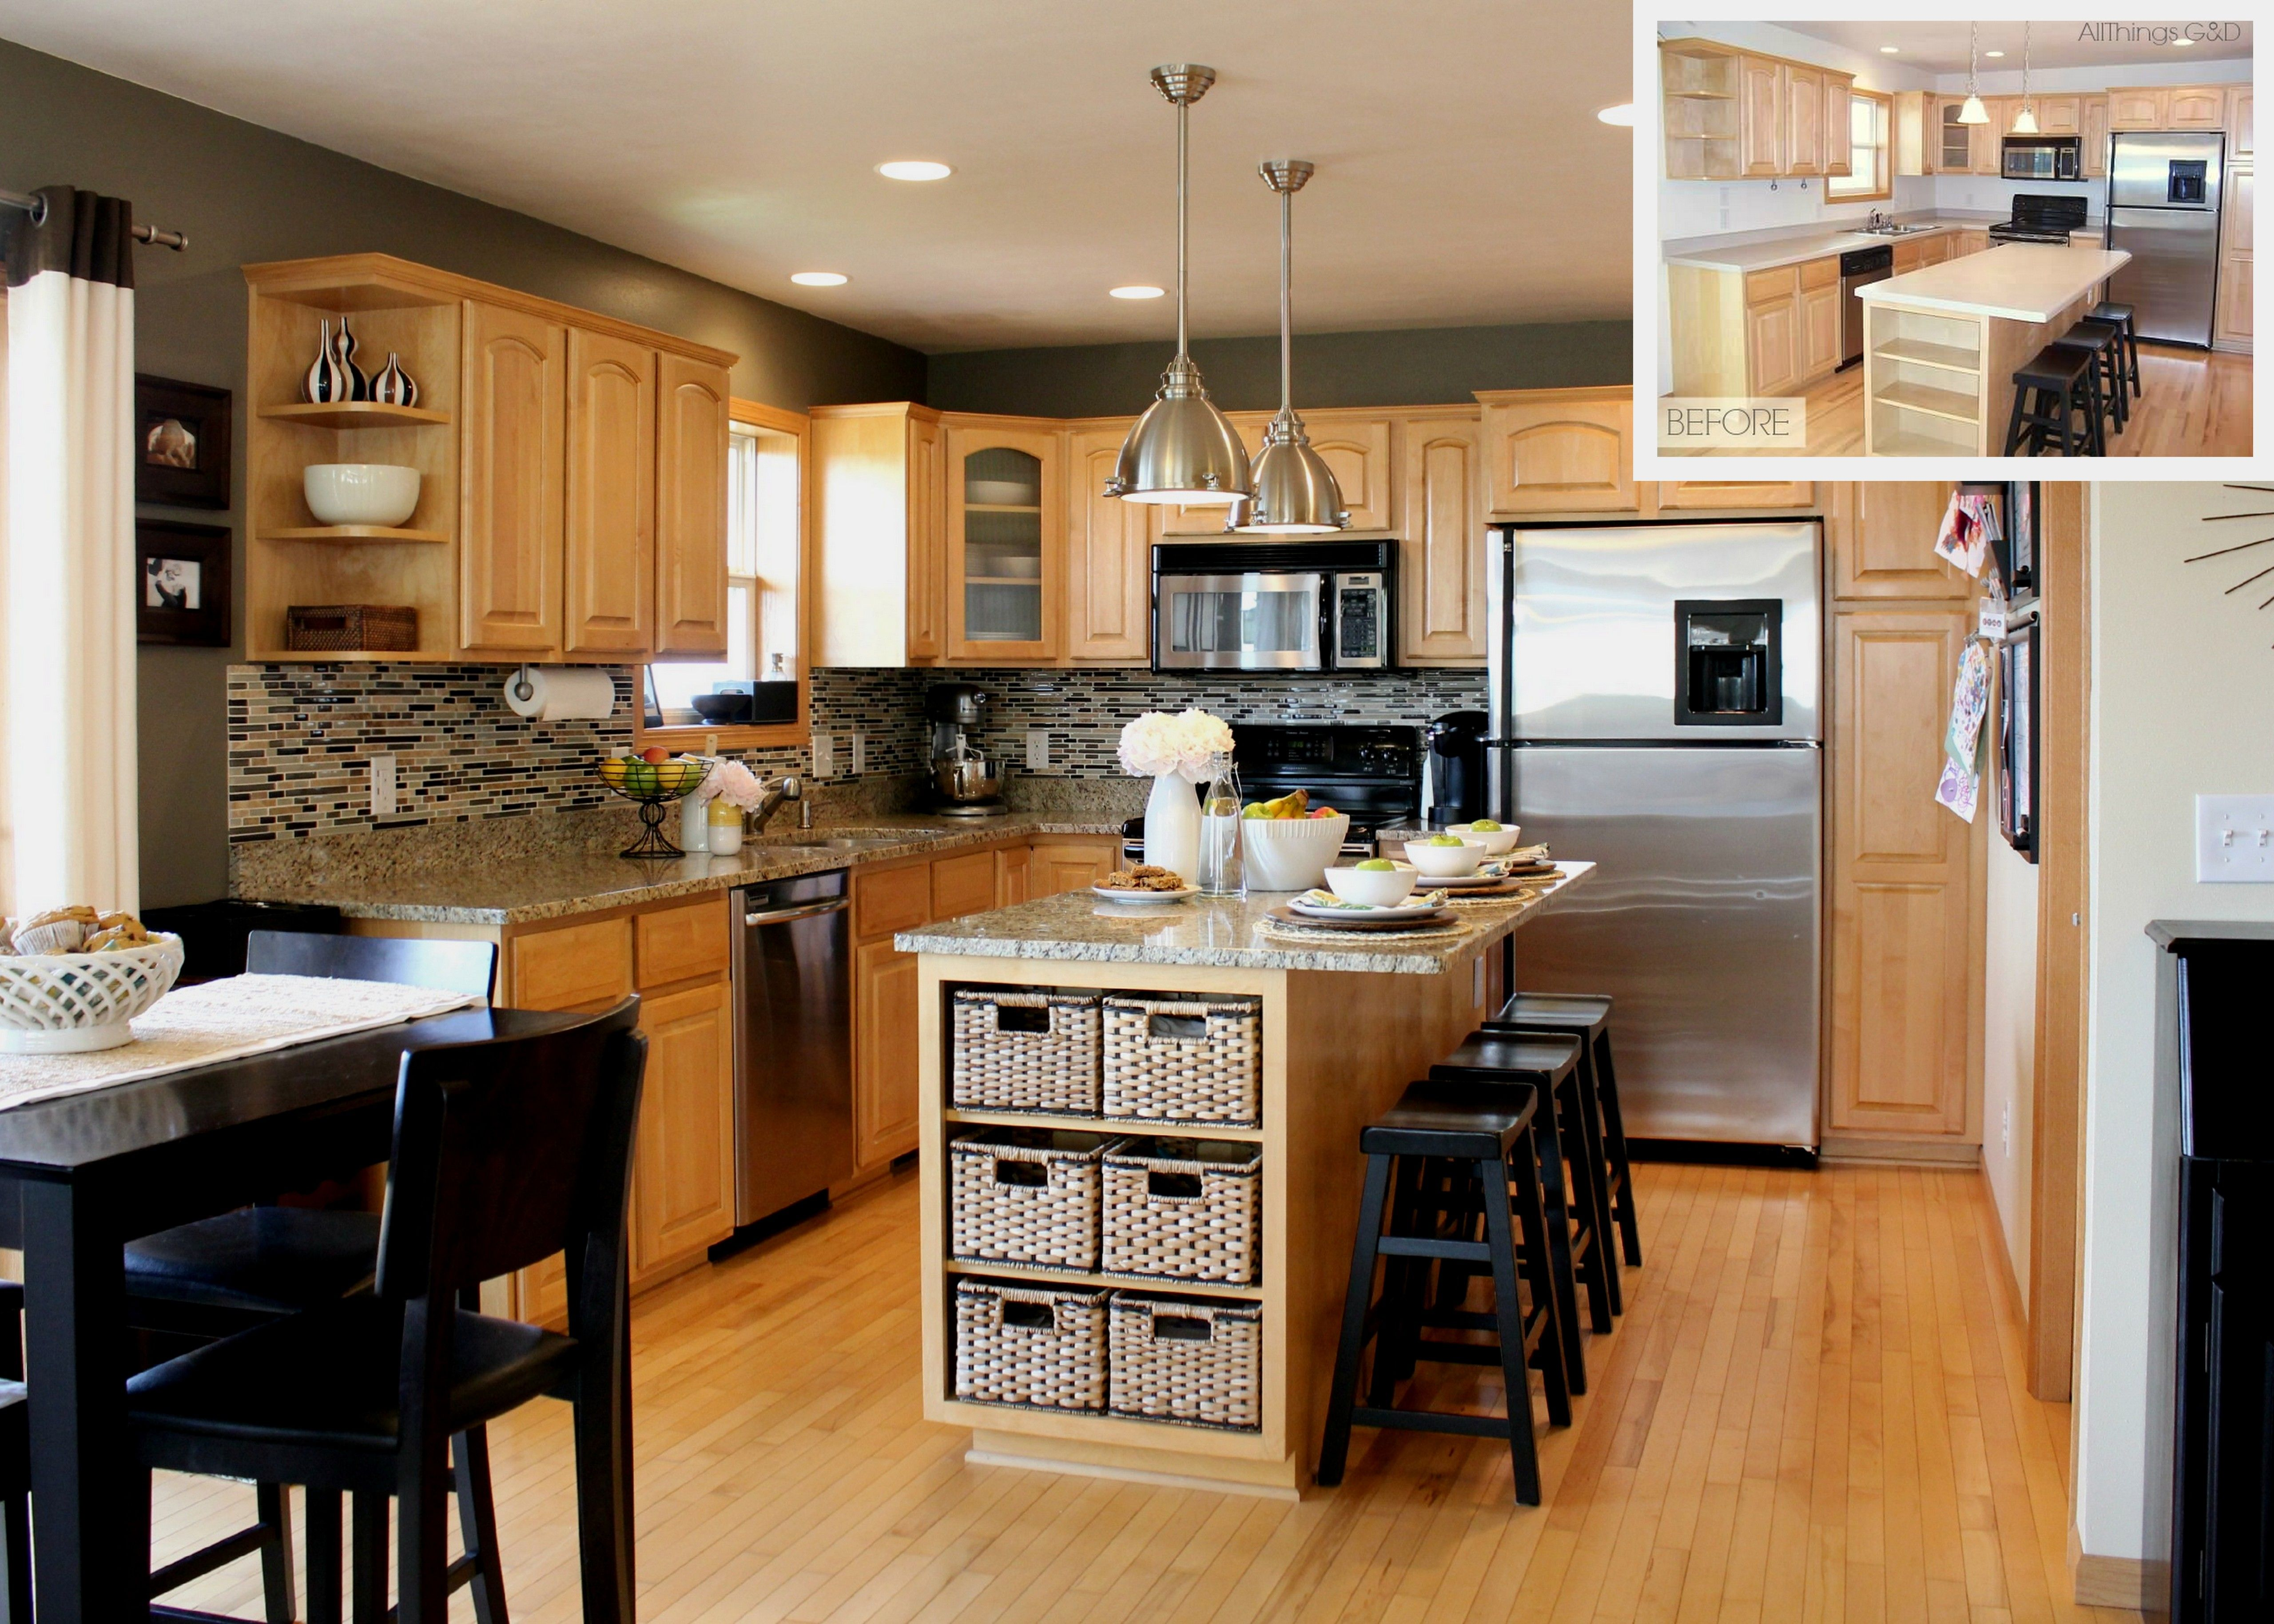 kitchen light wood kitchen cabinets Kitchen light brown wooden kitchen cabinet with glass door also brown marble counter top combined with brown wooden kitchen island and black wooden stools